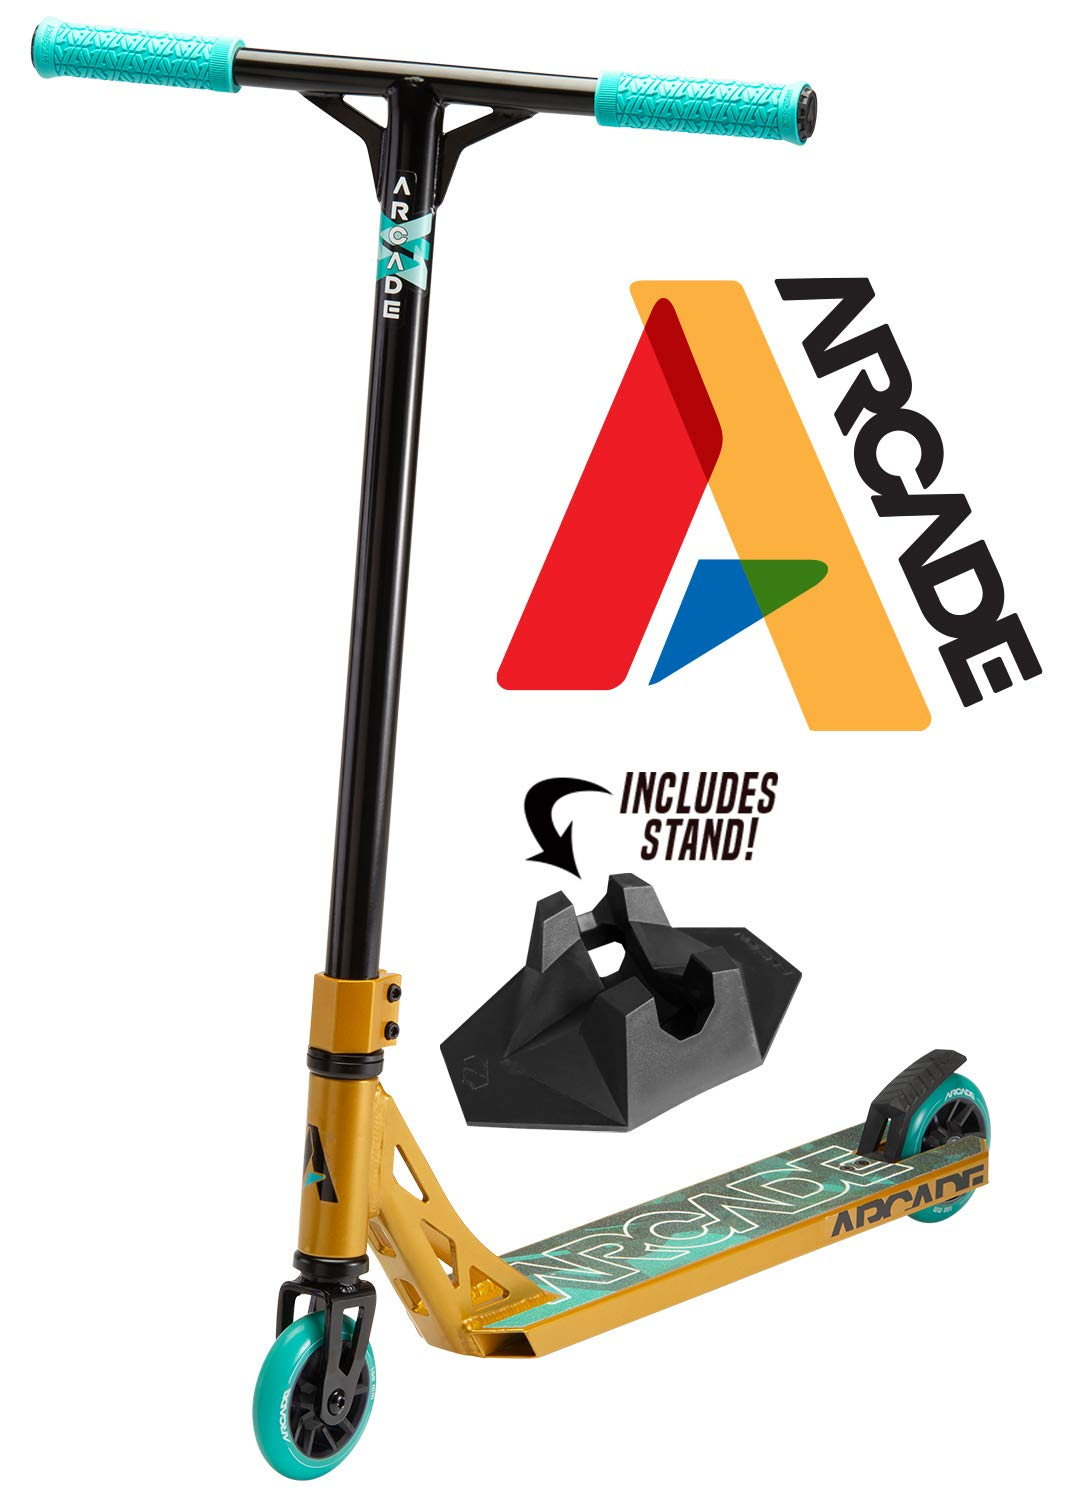 Arcade Pro Scooters